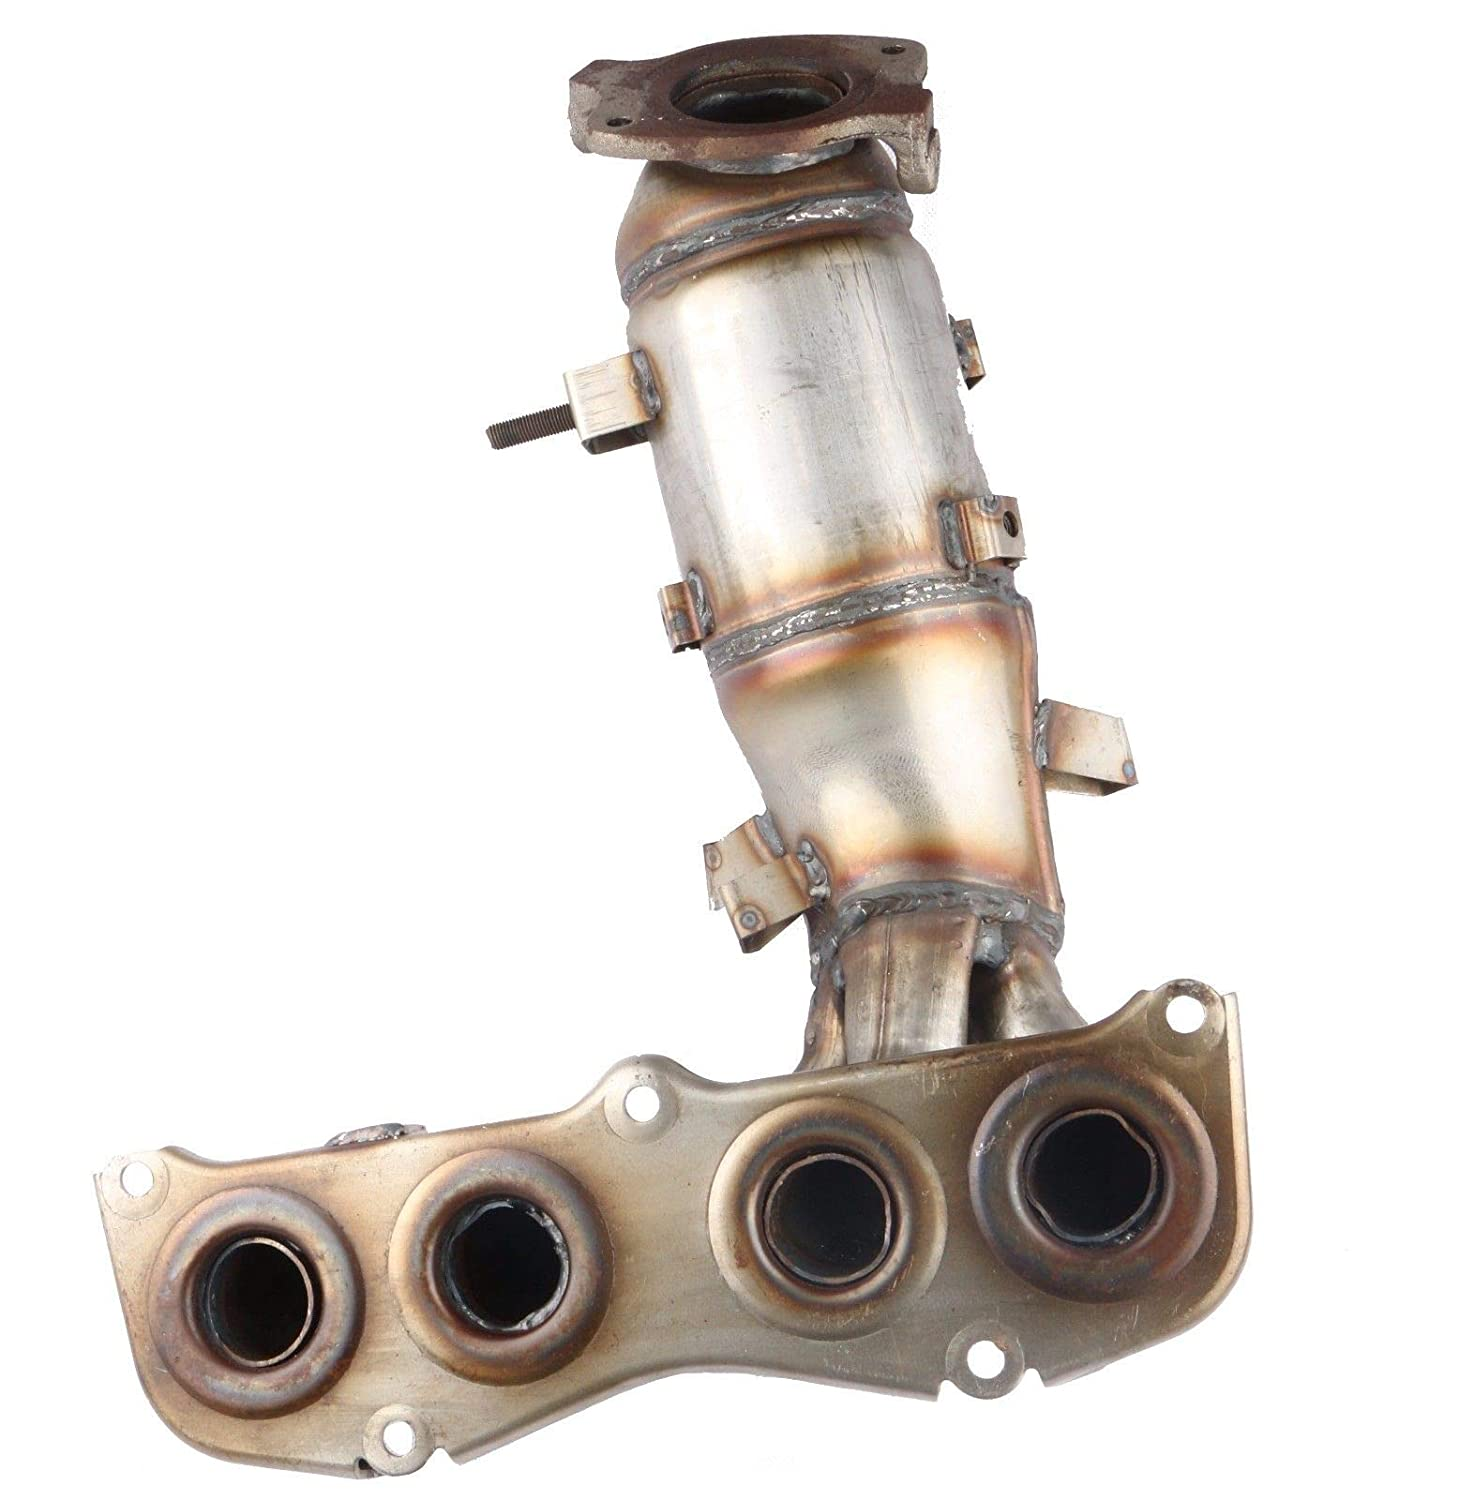 MOSTPLUS Exhaust Manifold w//Catalytic Converter For 02-06 Toyota Camry Solara 2.4L Replaces 674-811